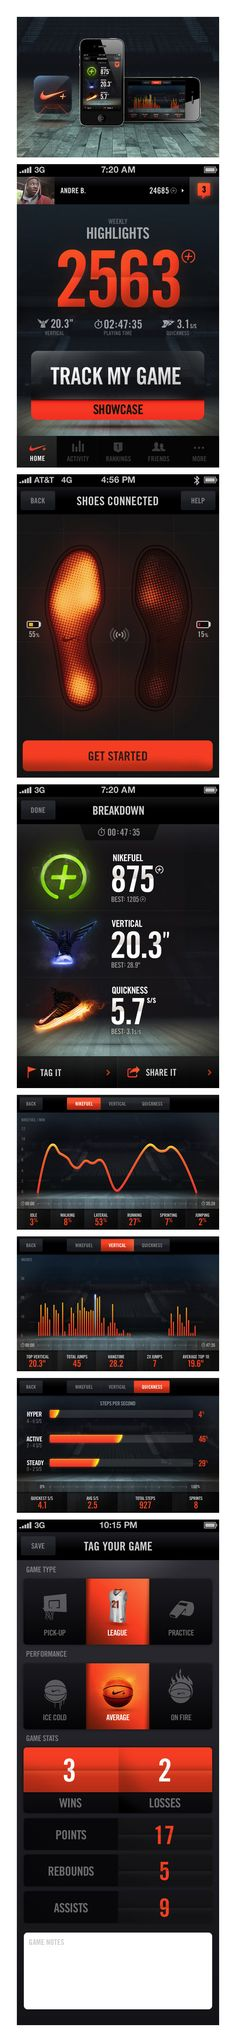 Nike+ Basketball by Jordan Fripp, via Behance